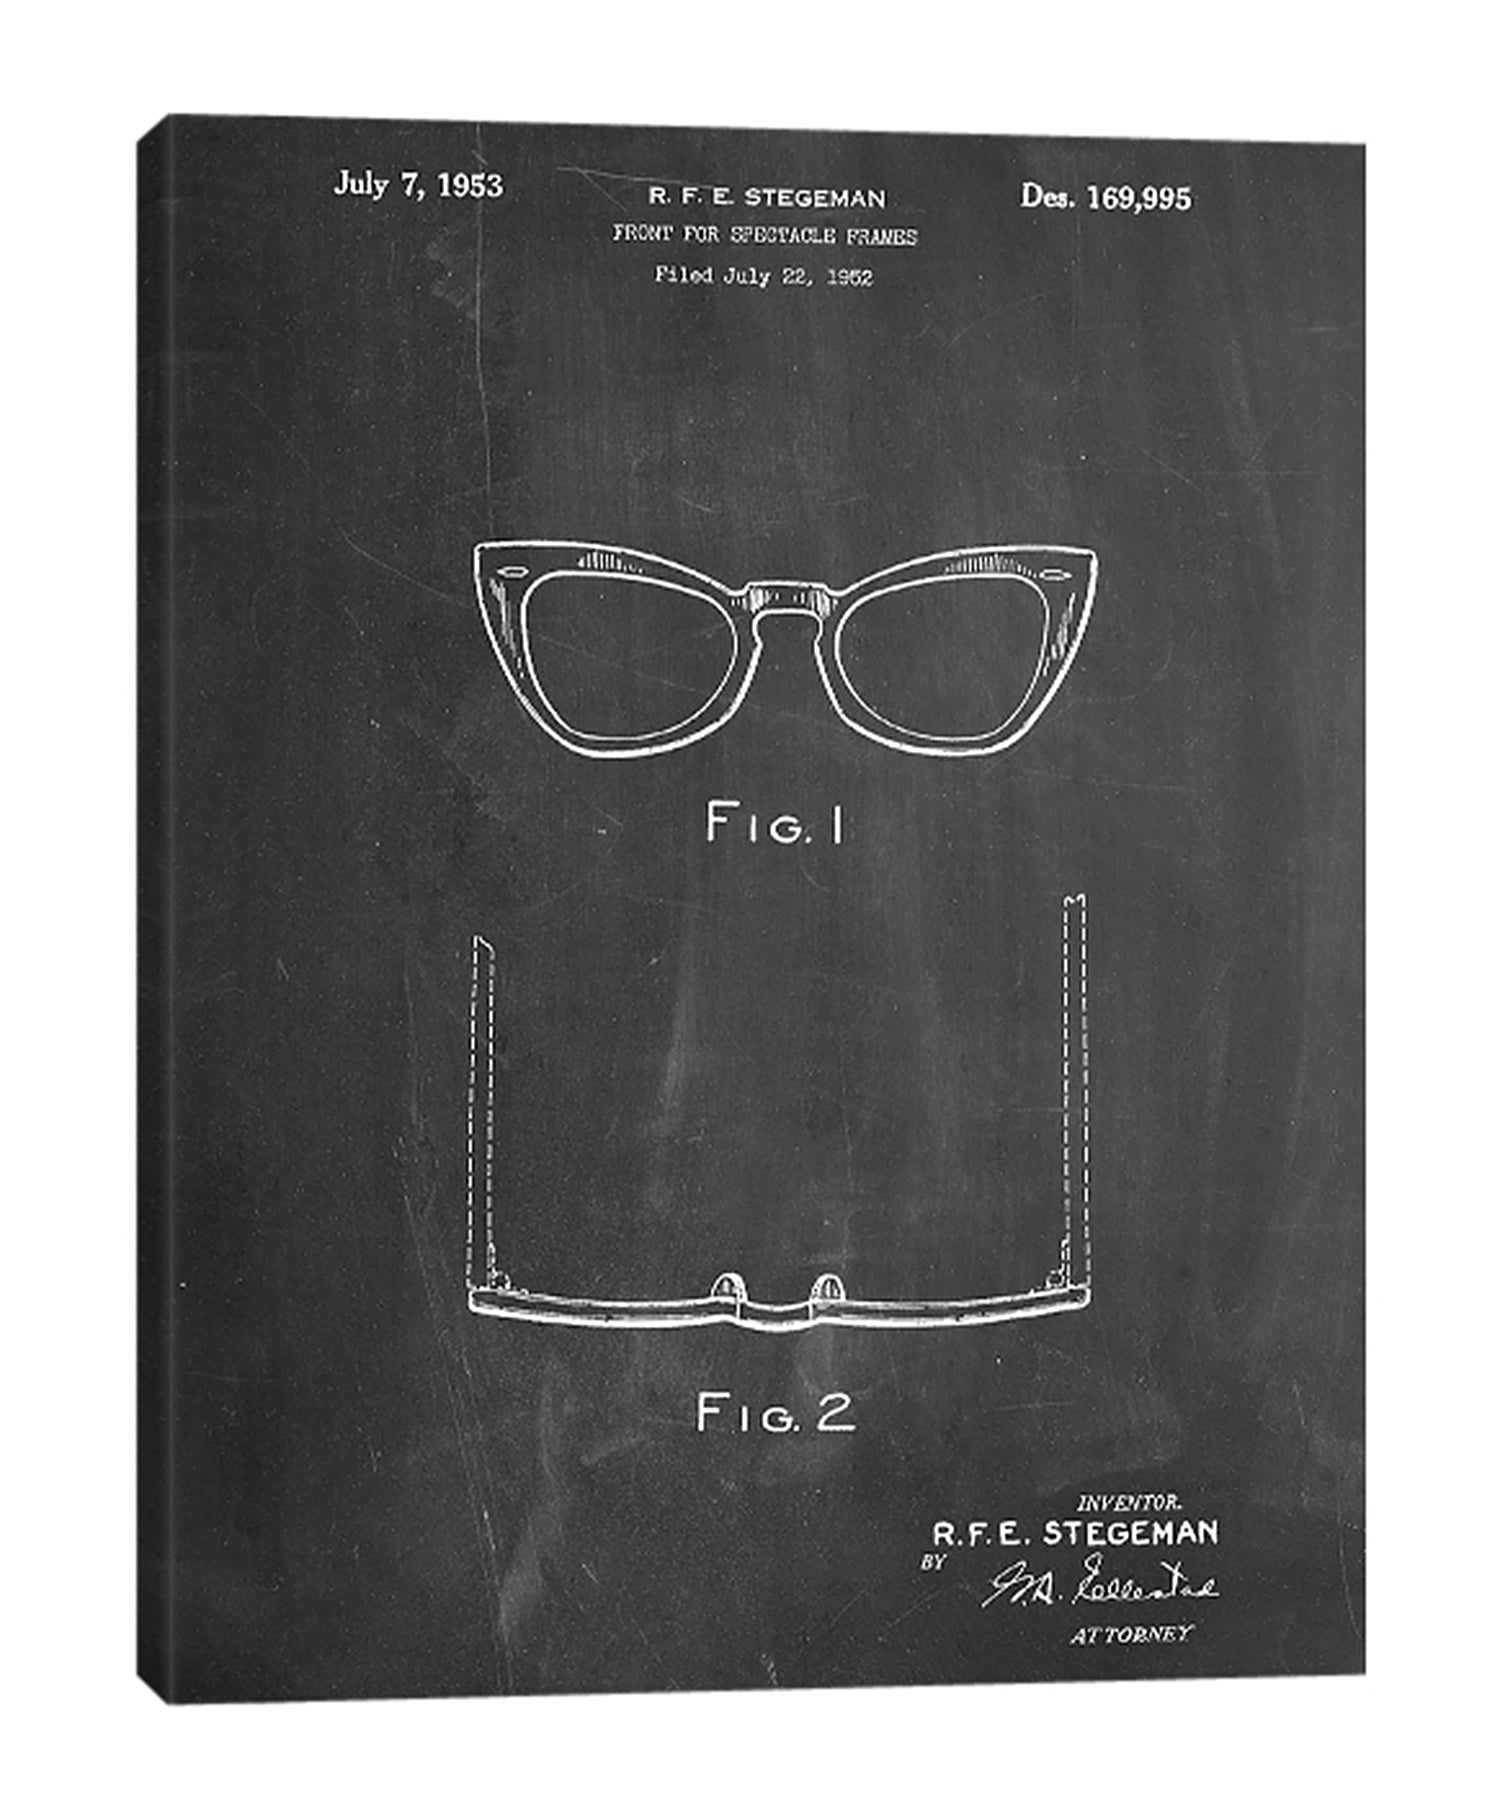 Cole-Borders,Modern & Contemporary,Entertainment,rayban glasses,rayban,words and phrases,patented,drawing,sketches,glass,Teal Blue,White,Black,Charcoal Gray,Blue,Mint Blue